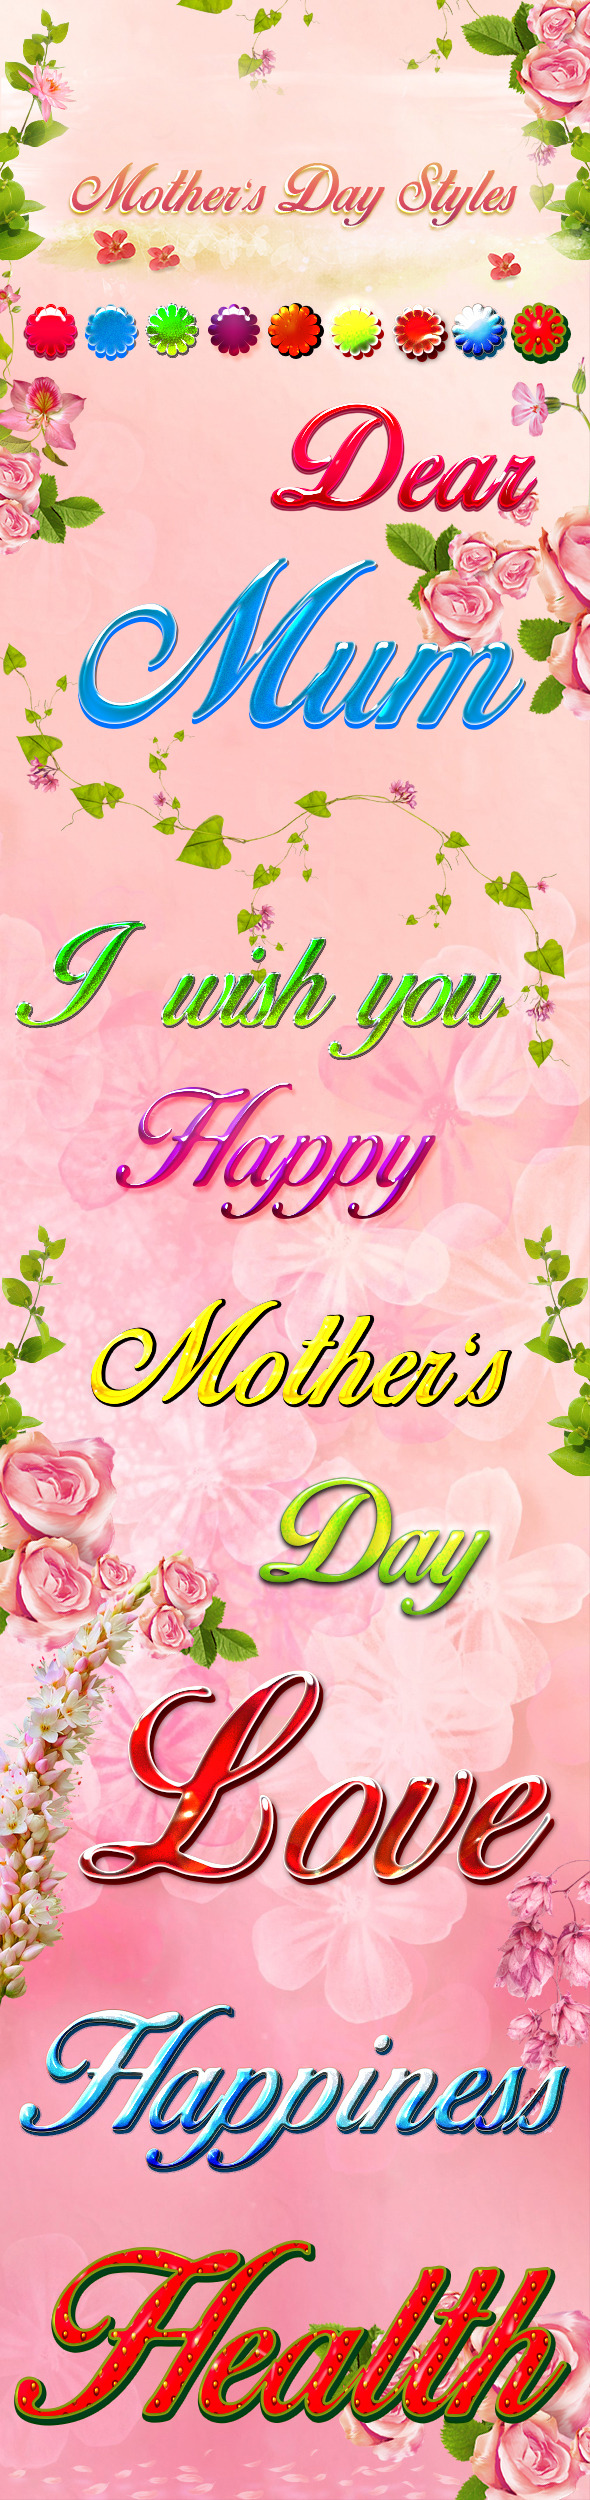 Mother's Day Styles - Text Effects Styles